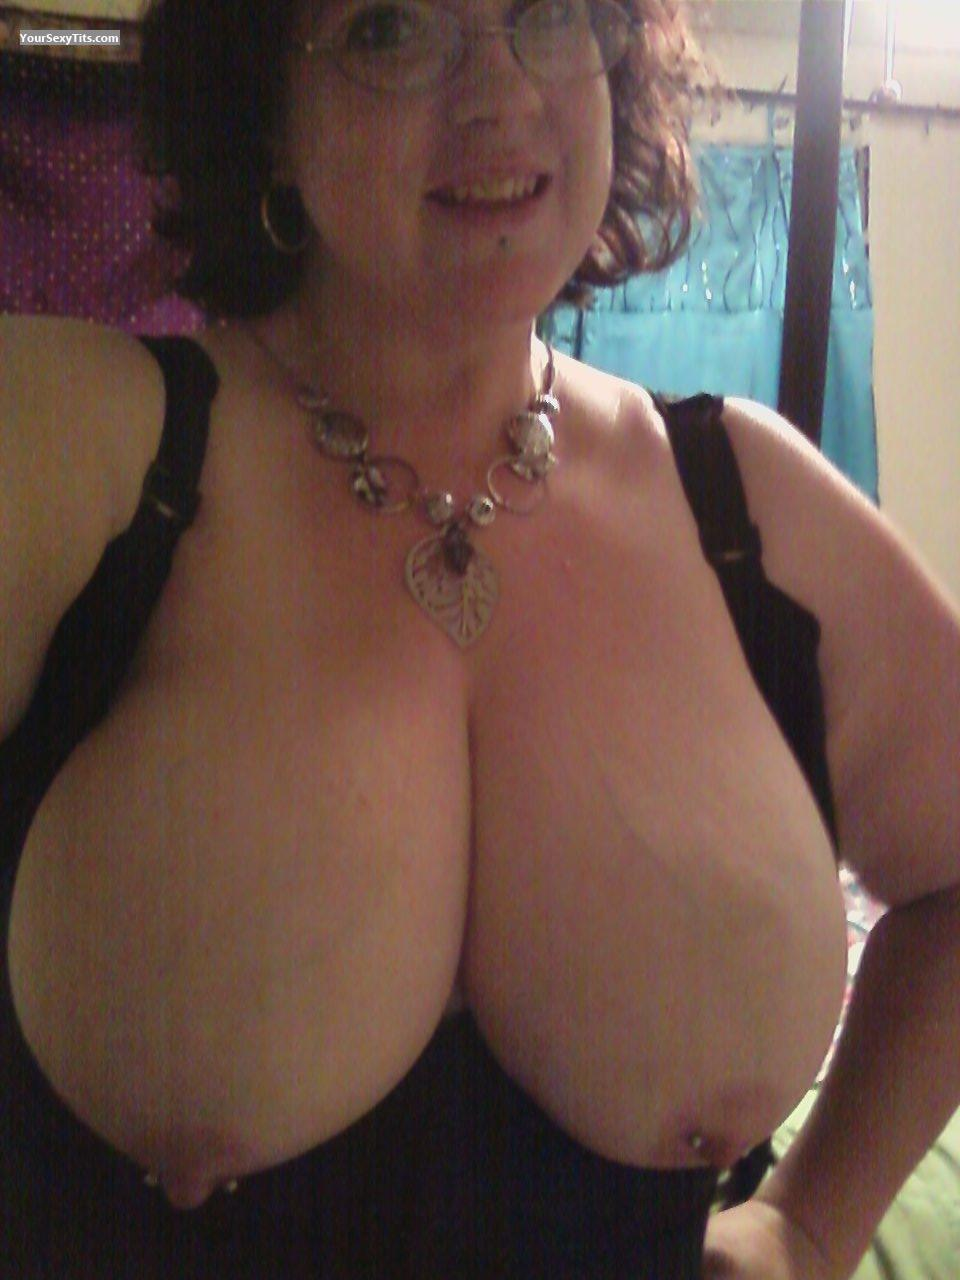 Tit Flash: My Extremely Big Tits (Selfie) - Topless PeachesnCream from United StatesPierced Nipples